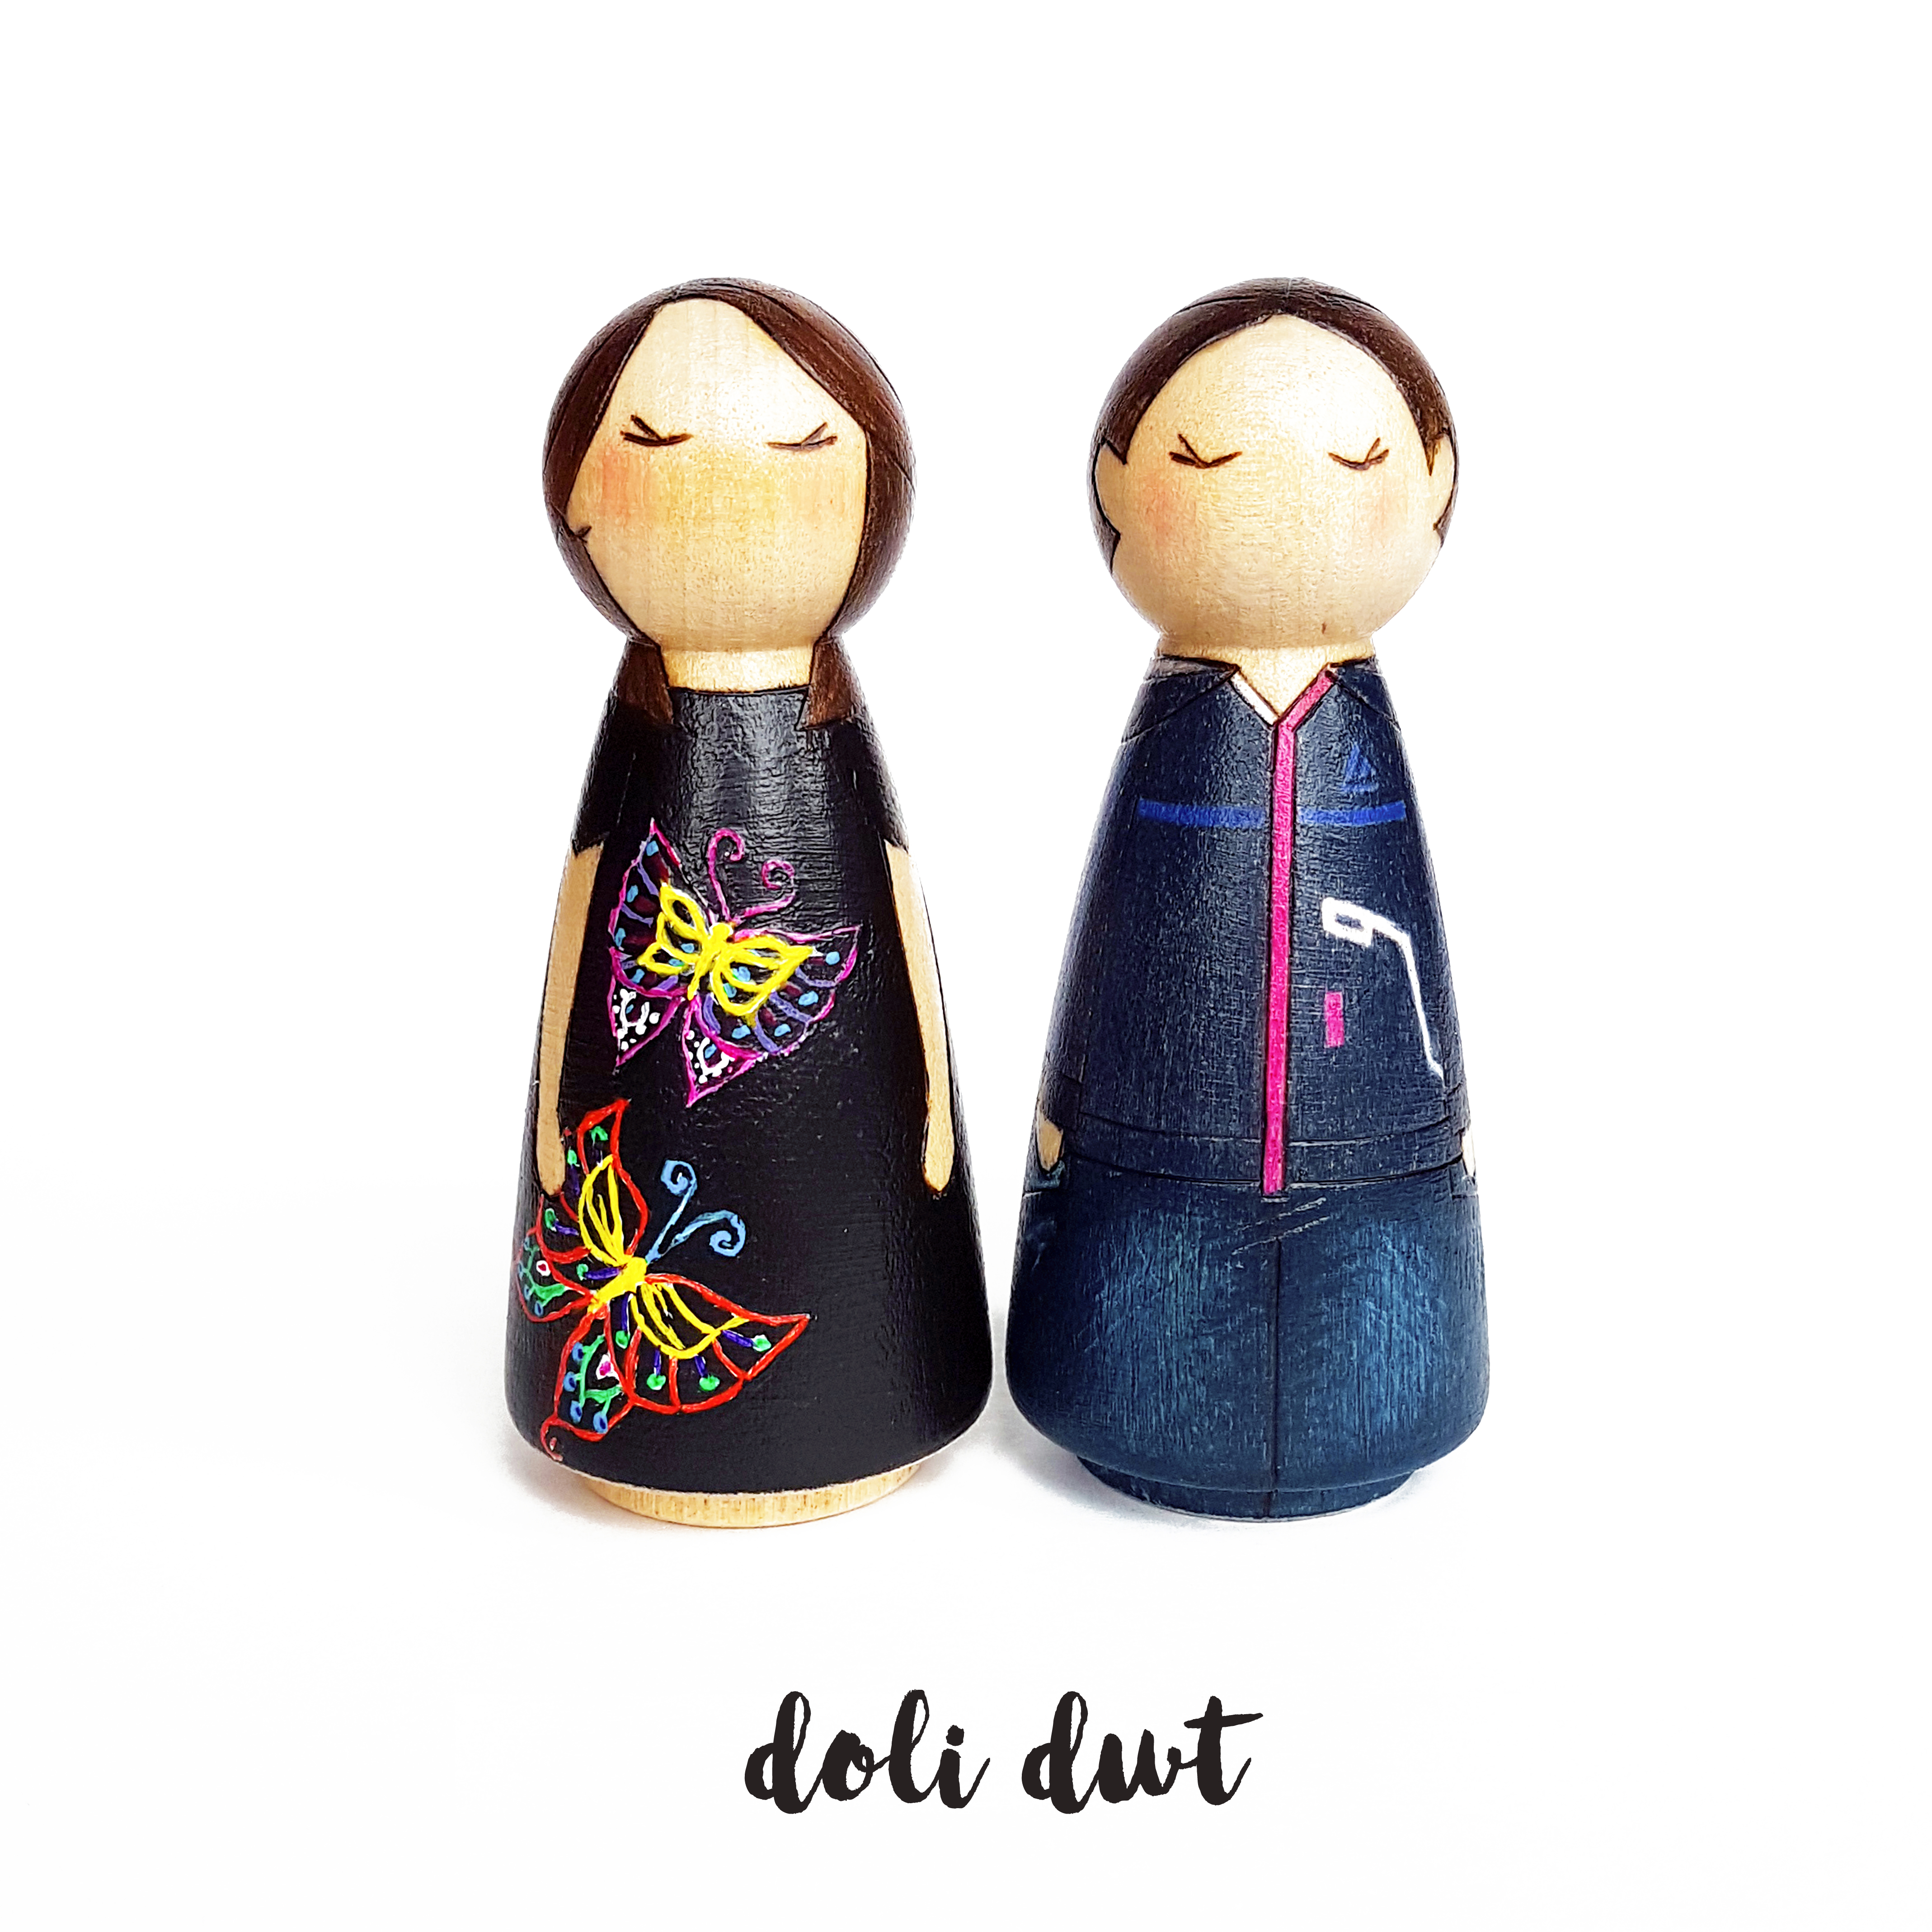 peg dolls, peg dolls uk, peg doll couple, personalised peg doll couple, peg doll family, personalised gift, personalised peg dolls, custom peg dolls